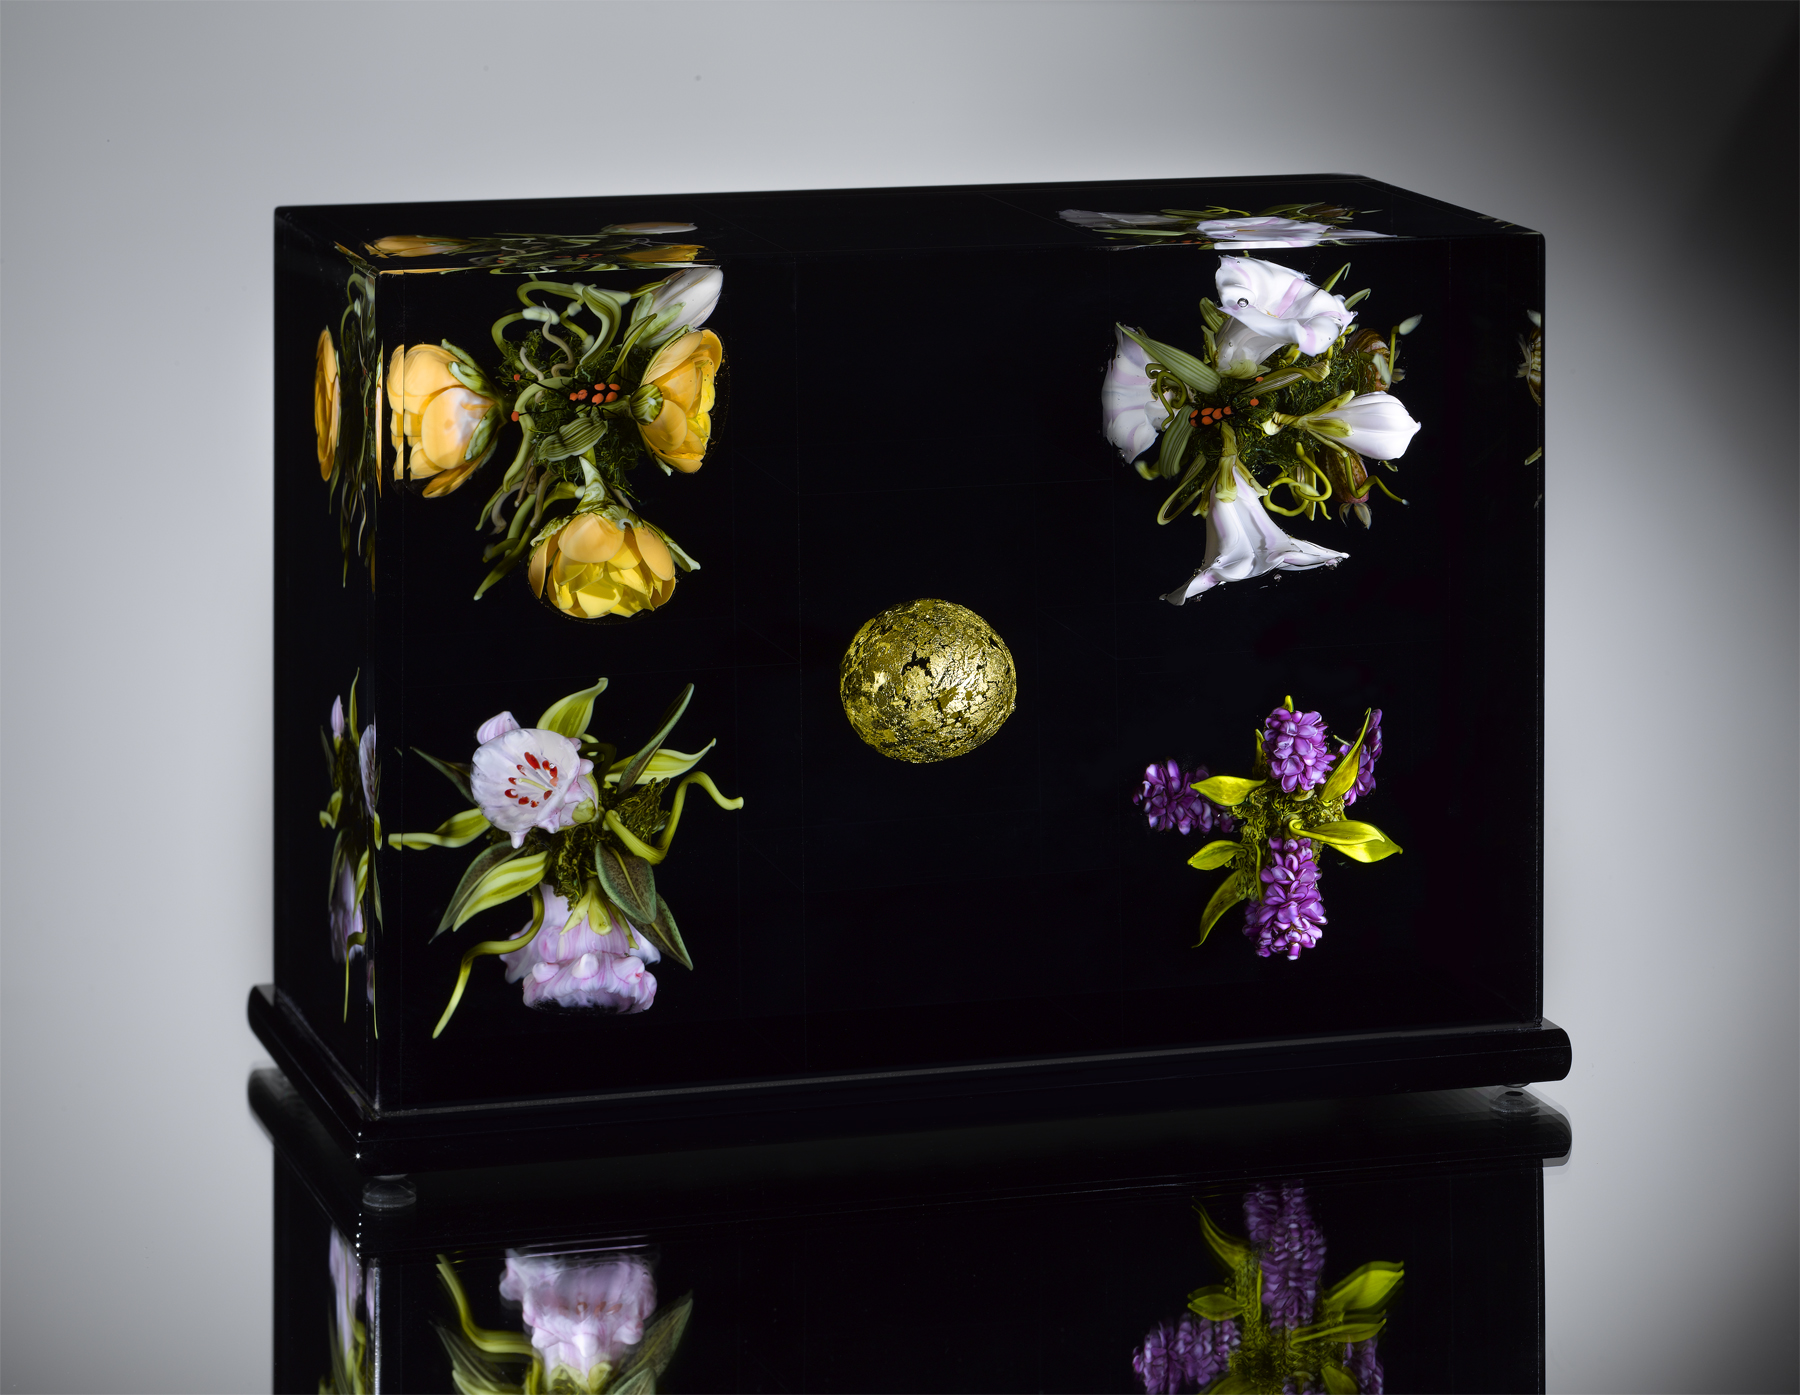 Golden Orb Floral Triptych, 2009, H. 5.37 x L. 7.75 x W. 4.0 inches; From the Minkoff Collection